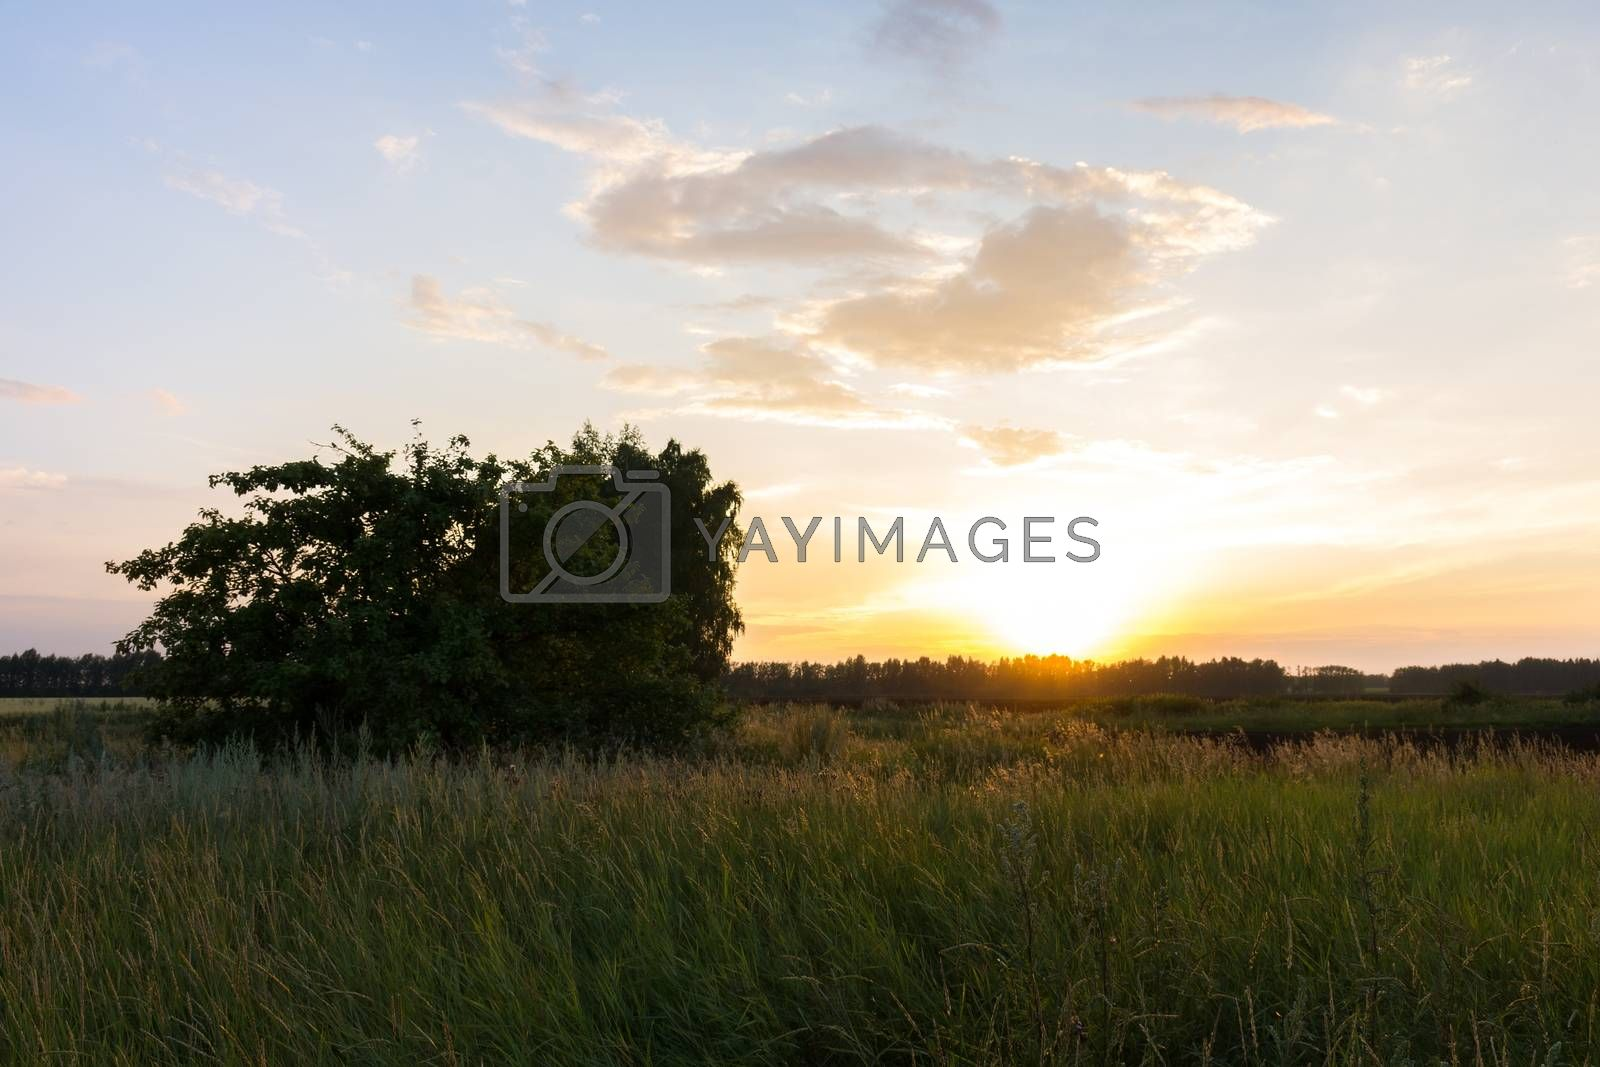 The picture shows a sunset